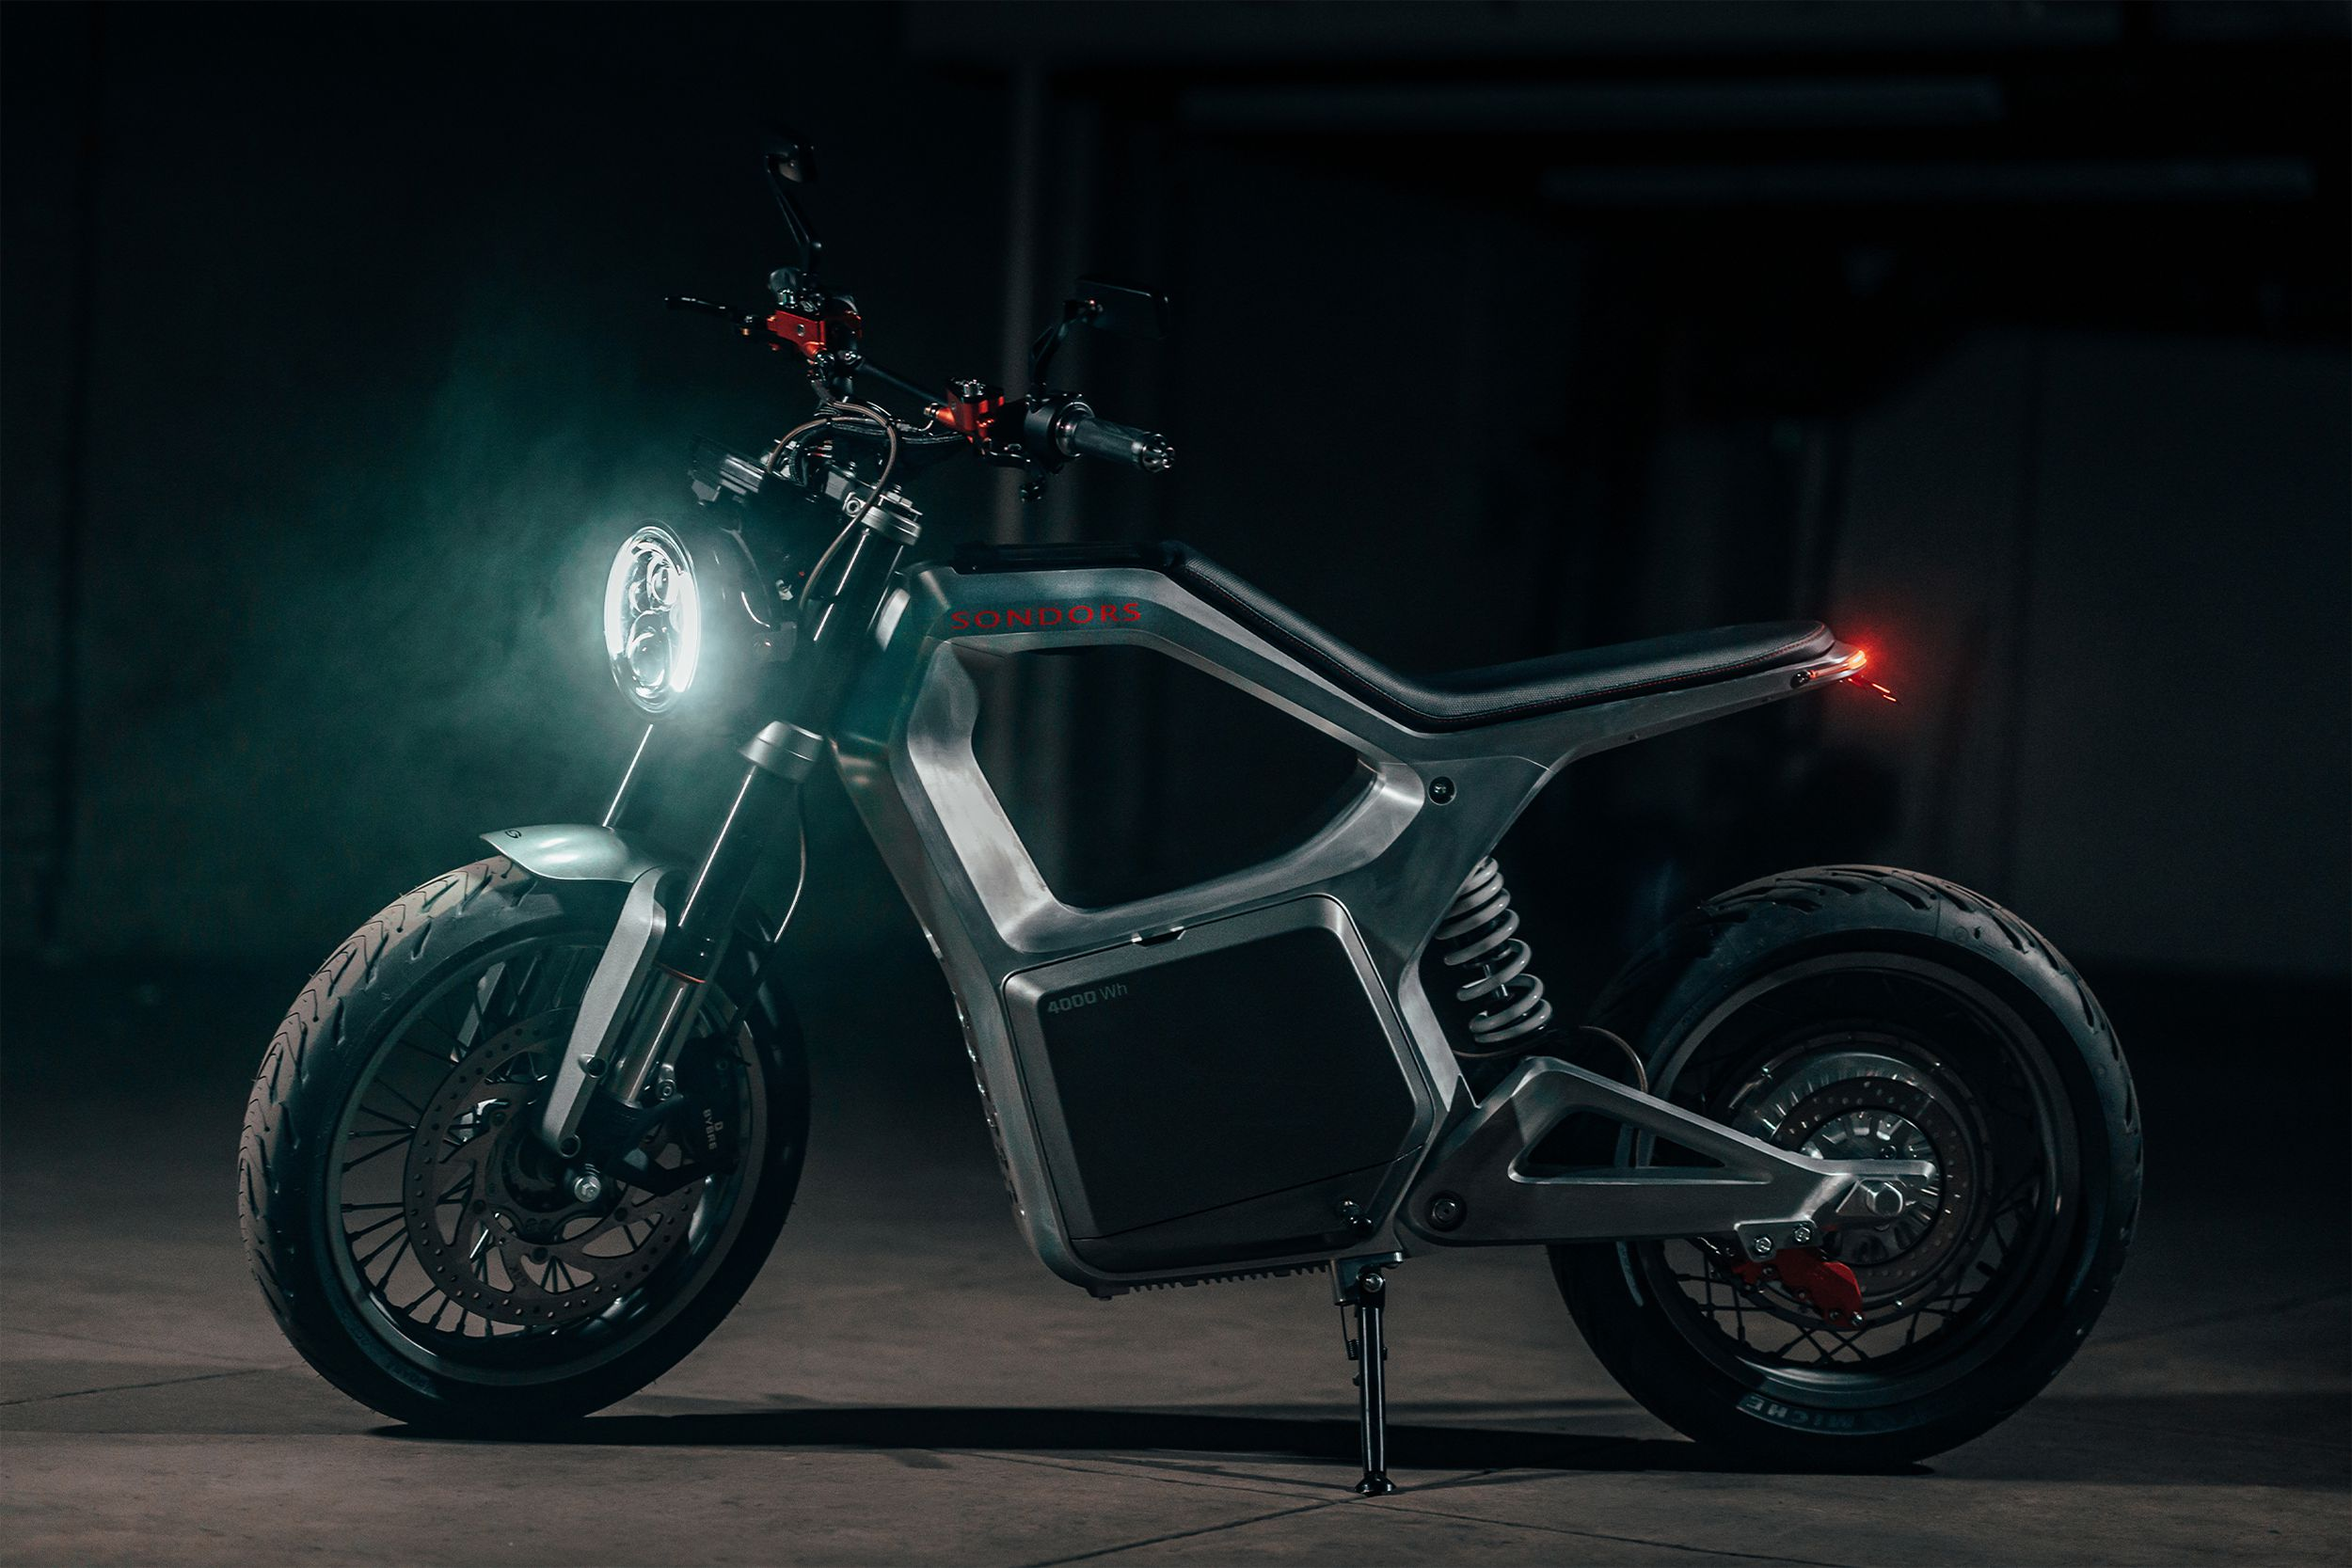 Sondors Metacycle – an affordable competitor coming to US markets soon